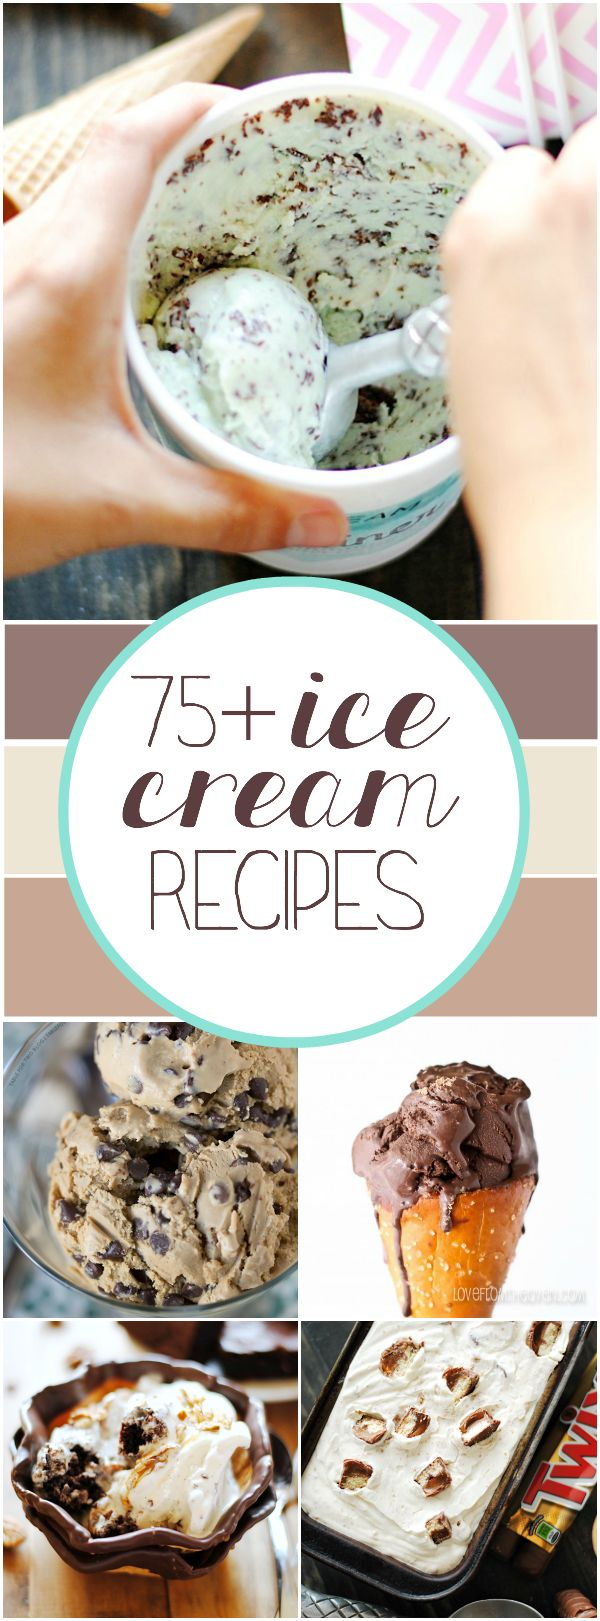 75+ Ice Cream Recipes | This is what I need for our new ice cream maker :)